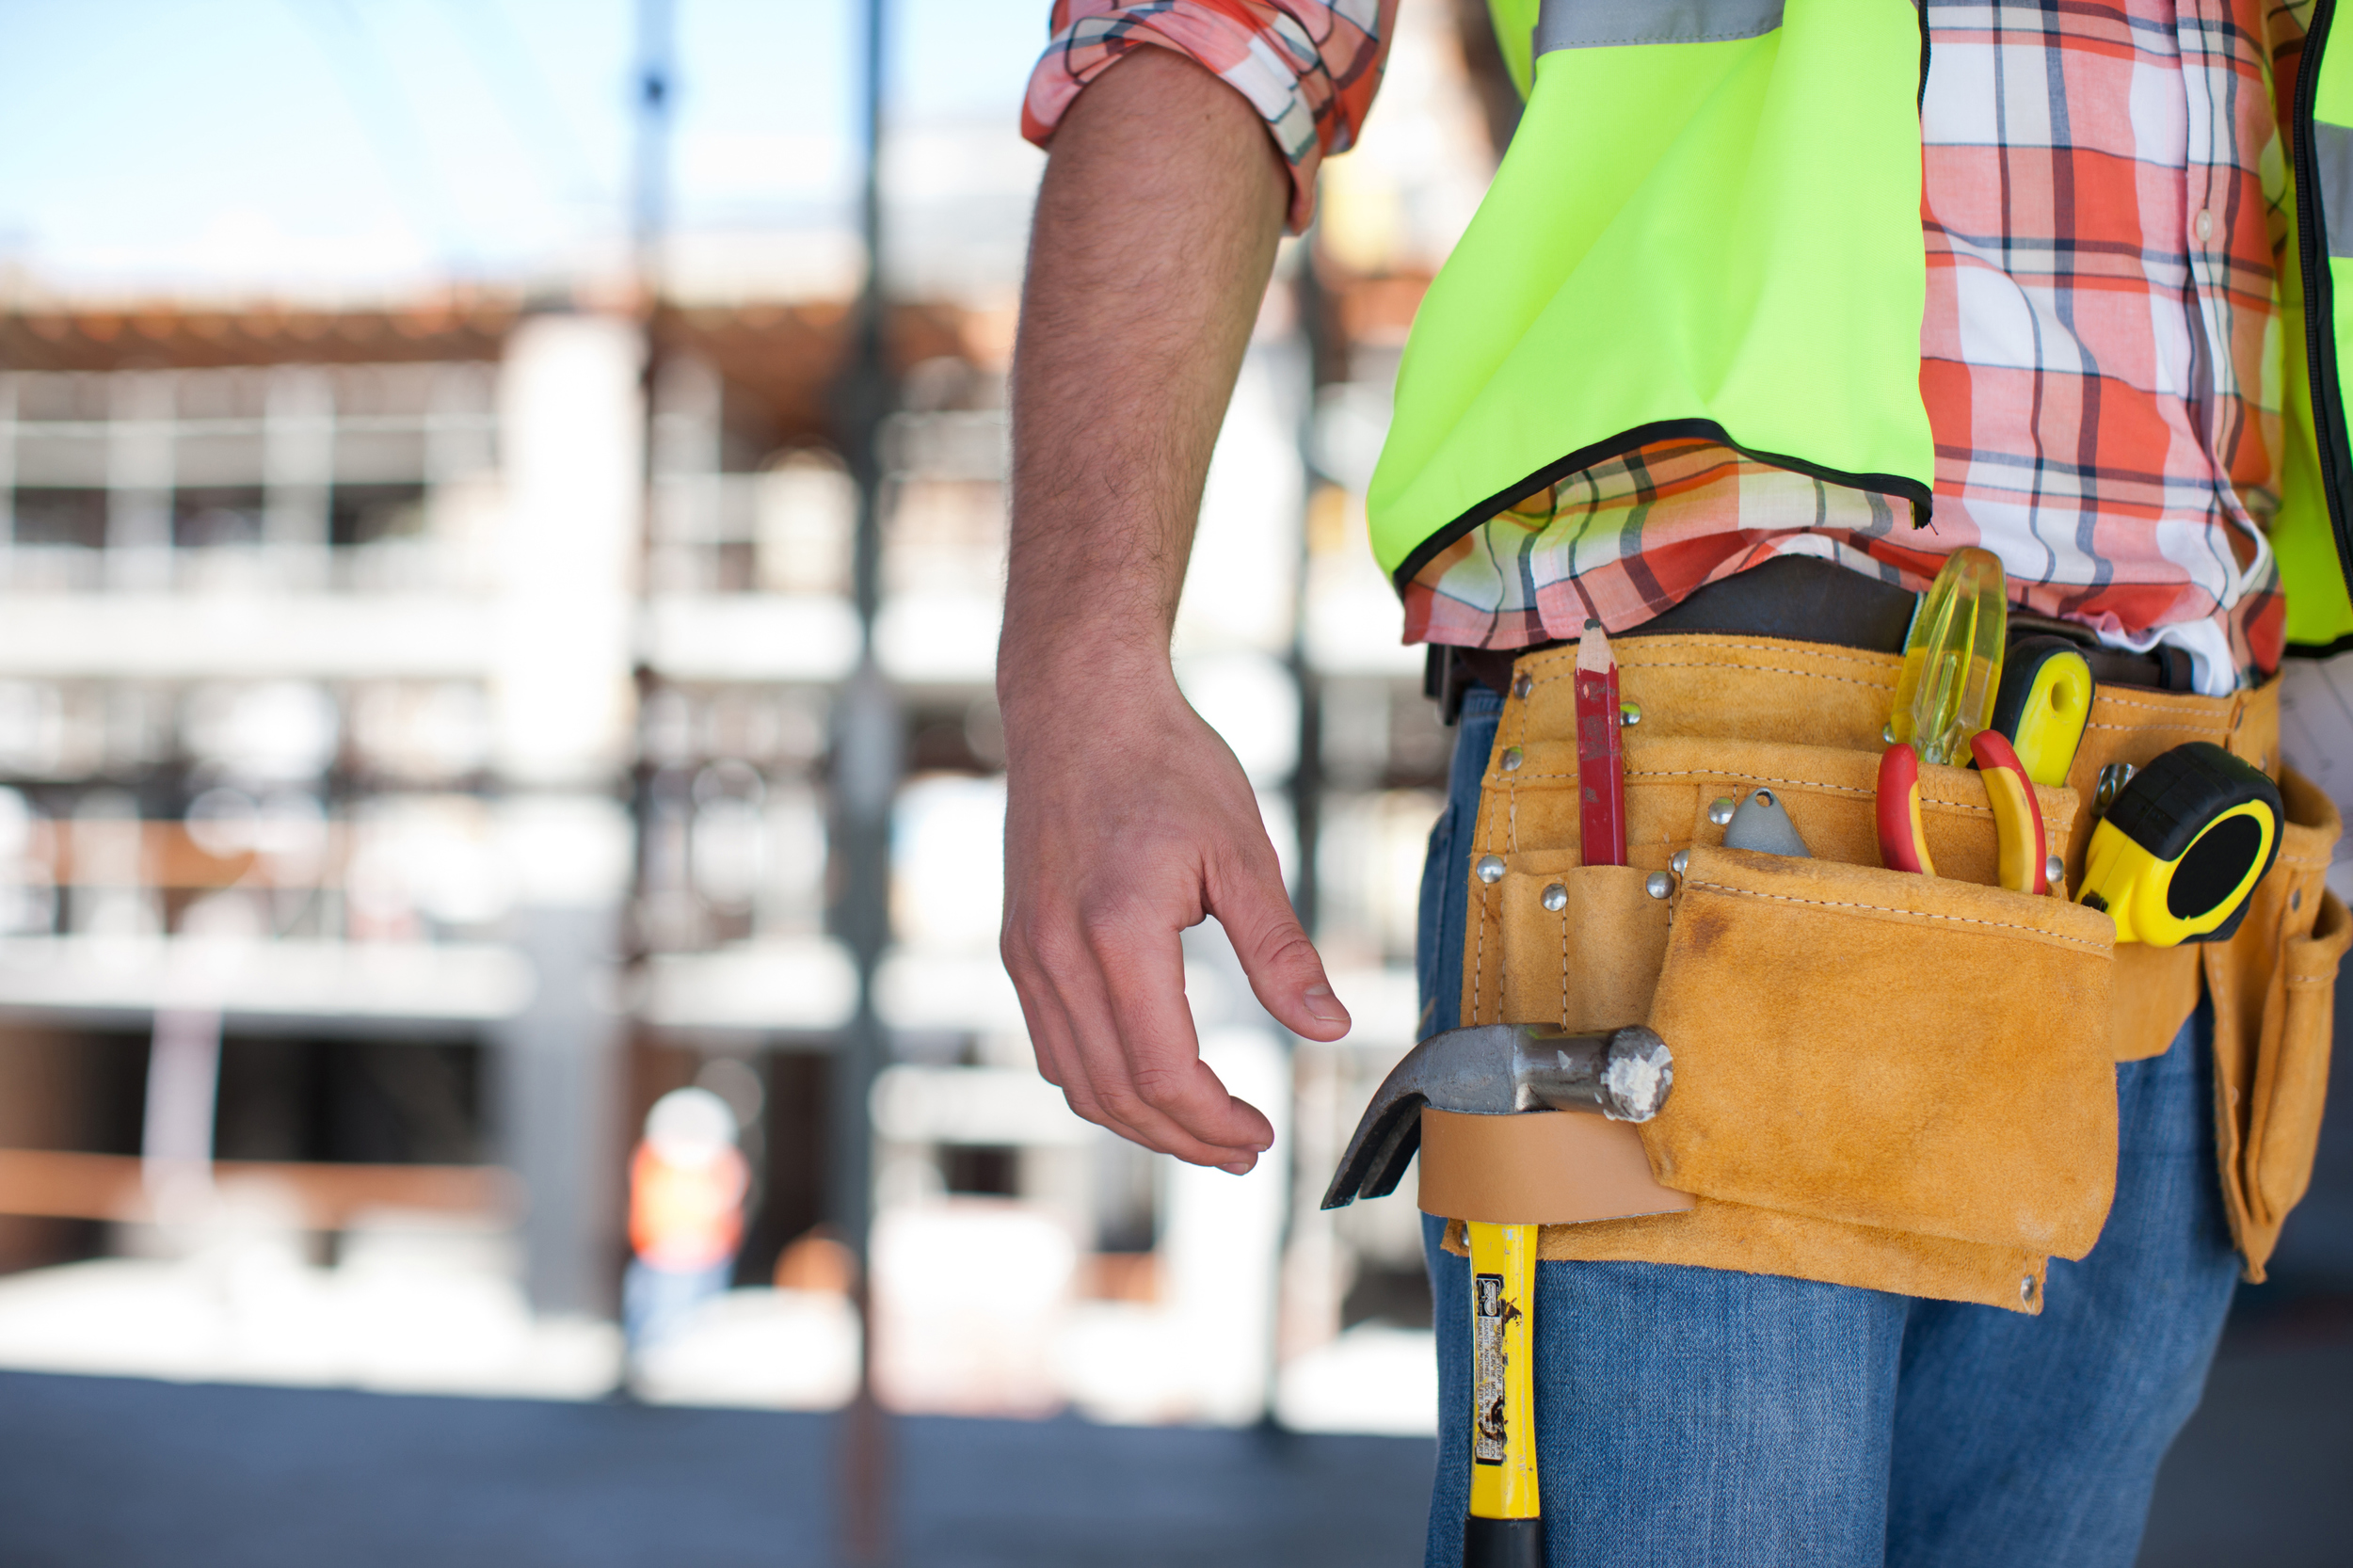 close-up-of-construction-worker-s-tool-belt-on-construction-1